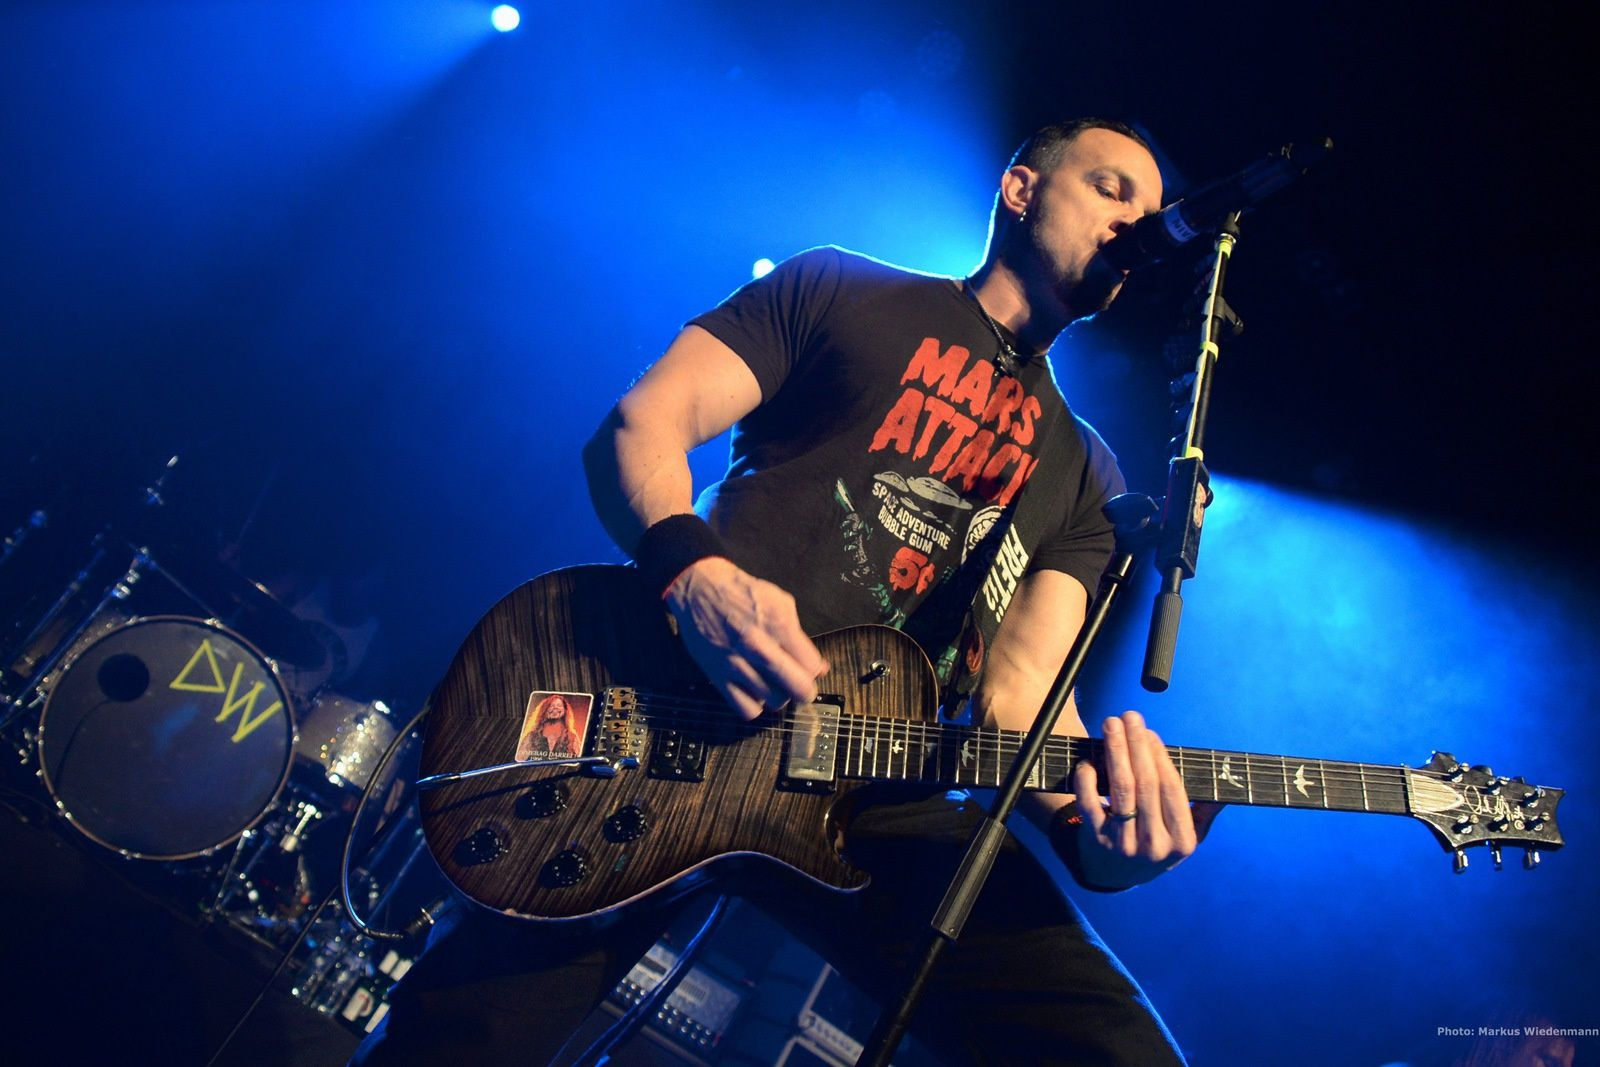 Interview: MARK TREMONTI talking about the current tour and the upcoming TREMONTI and ALTER BRIDGE records